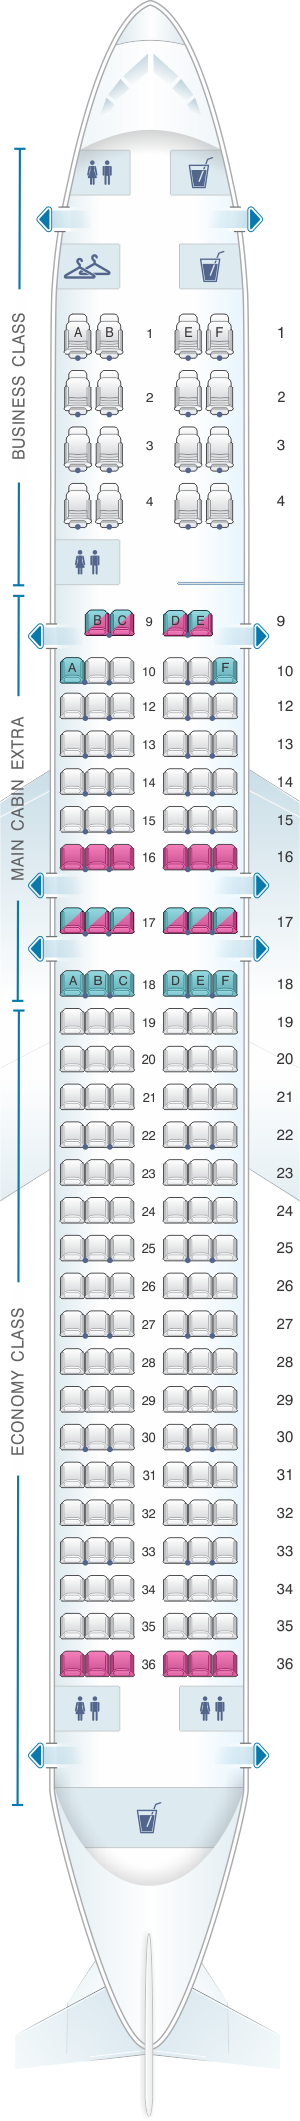 Seat map for American Airlines Boeing B757 200 176PAX